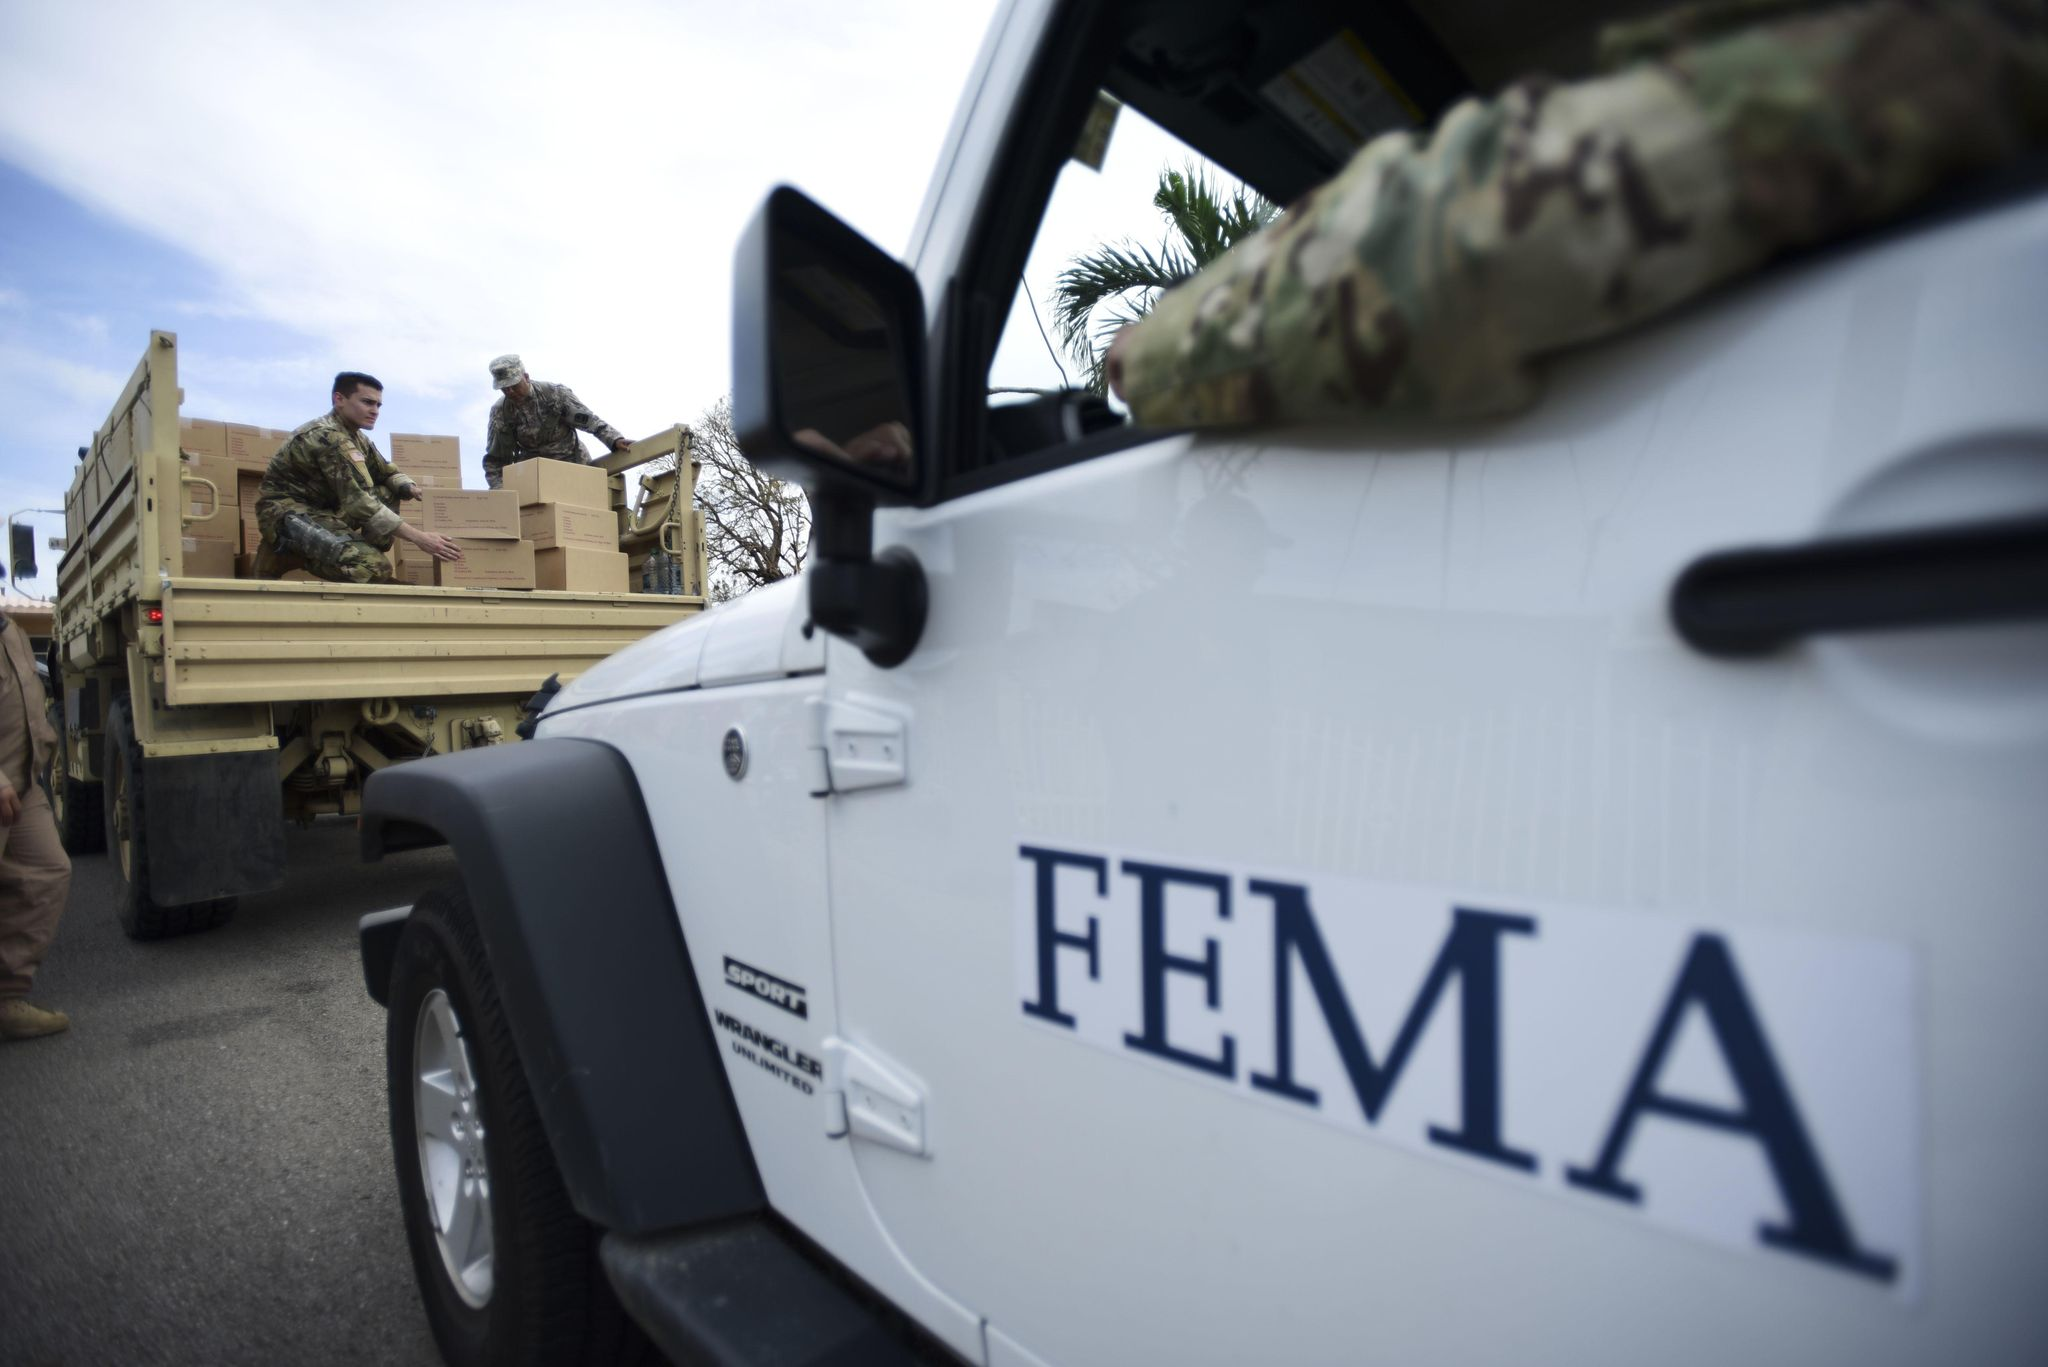 FEMA fights 'rumors' as Florence arrives, including reports that $10M was given to ICE